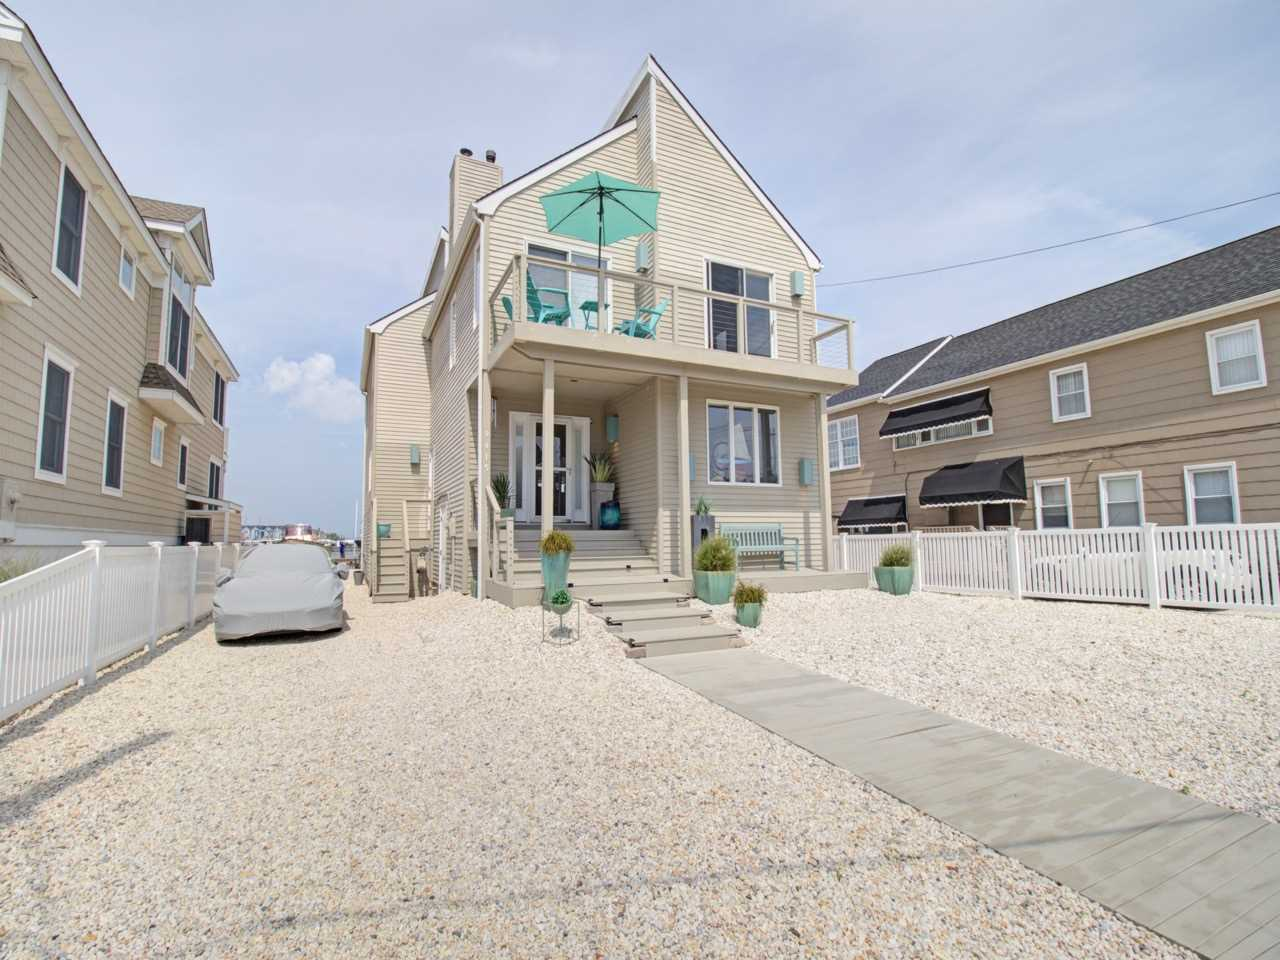 9415 Sunset, Stone Harbor